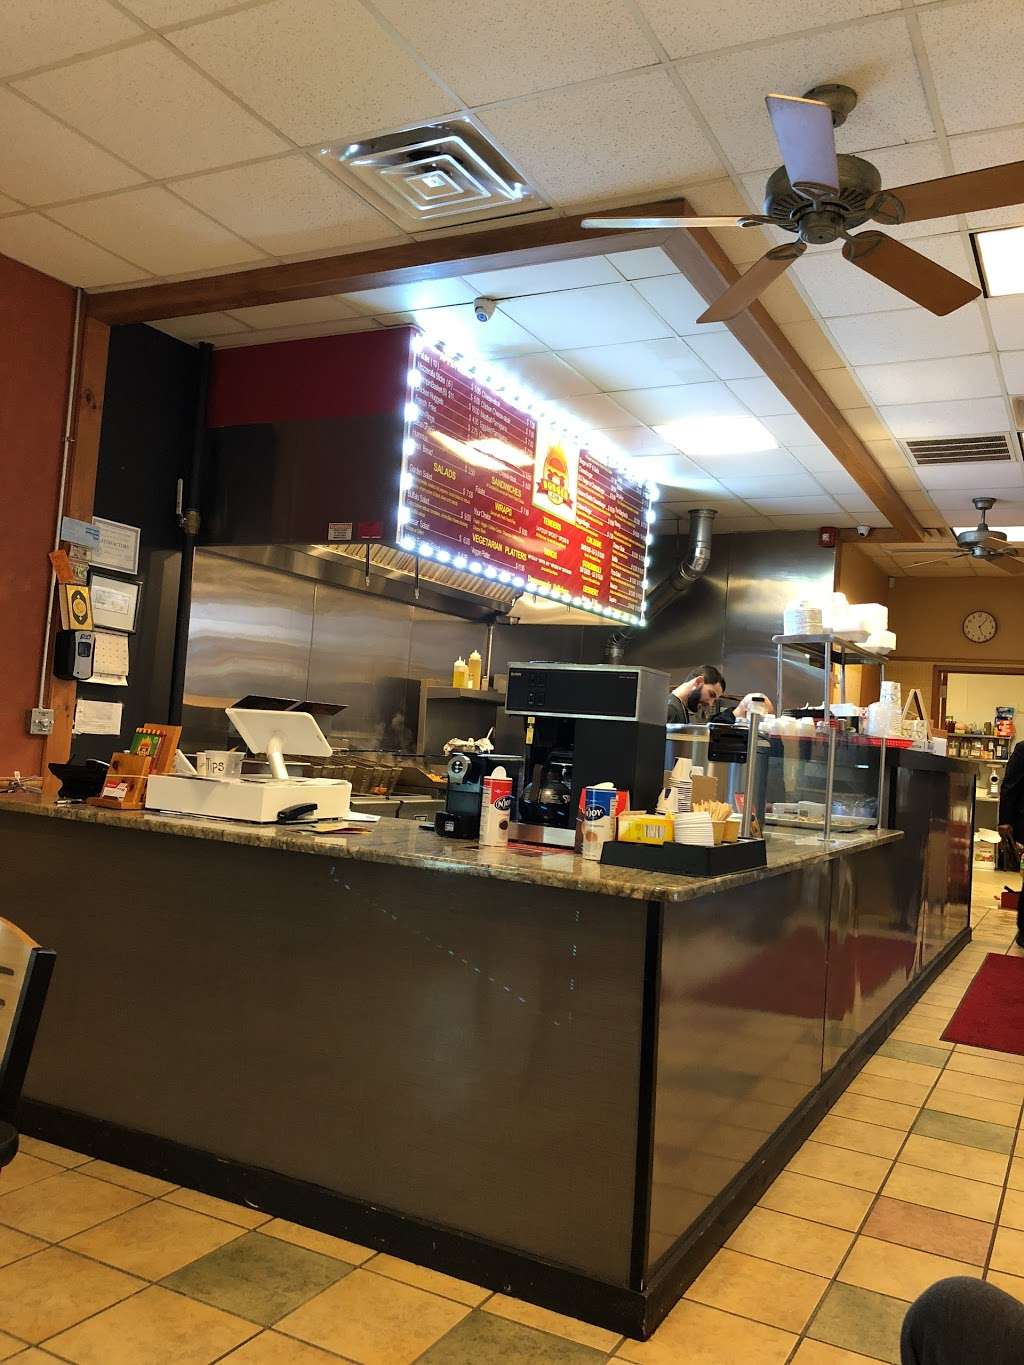 Halal Burger Zone - restaurant  | Photo 1 of 10 | Address: 586 Lawrence Square Blvd S, Lawrence Township, NJ 08648, USA | Phone: (609) 570-0115